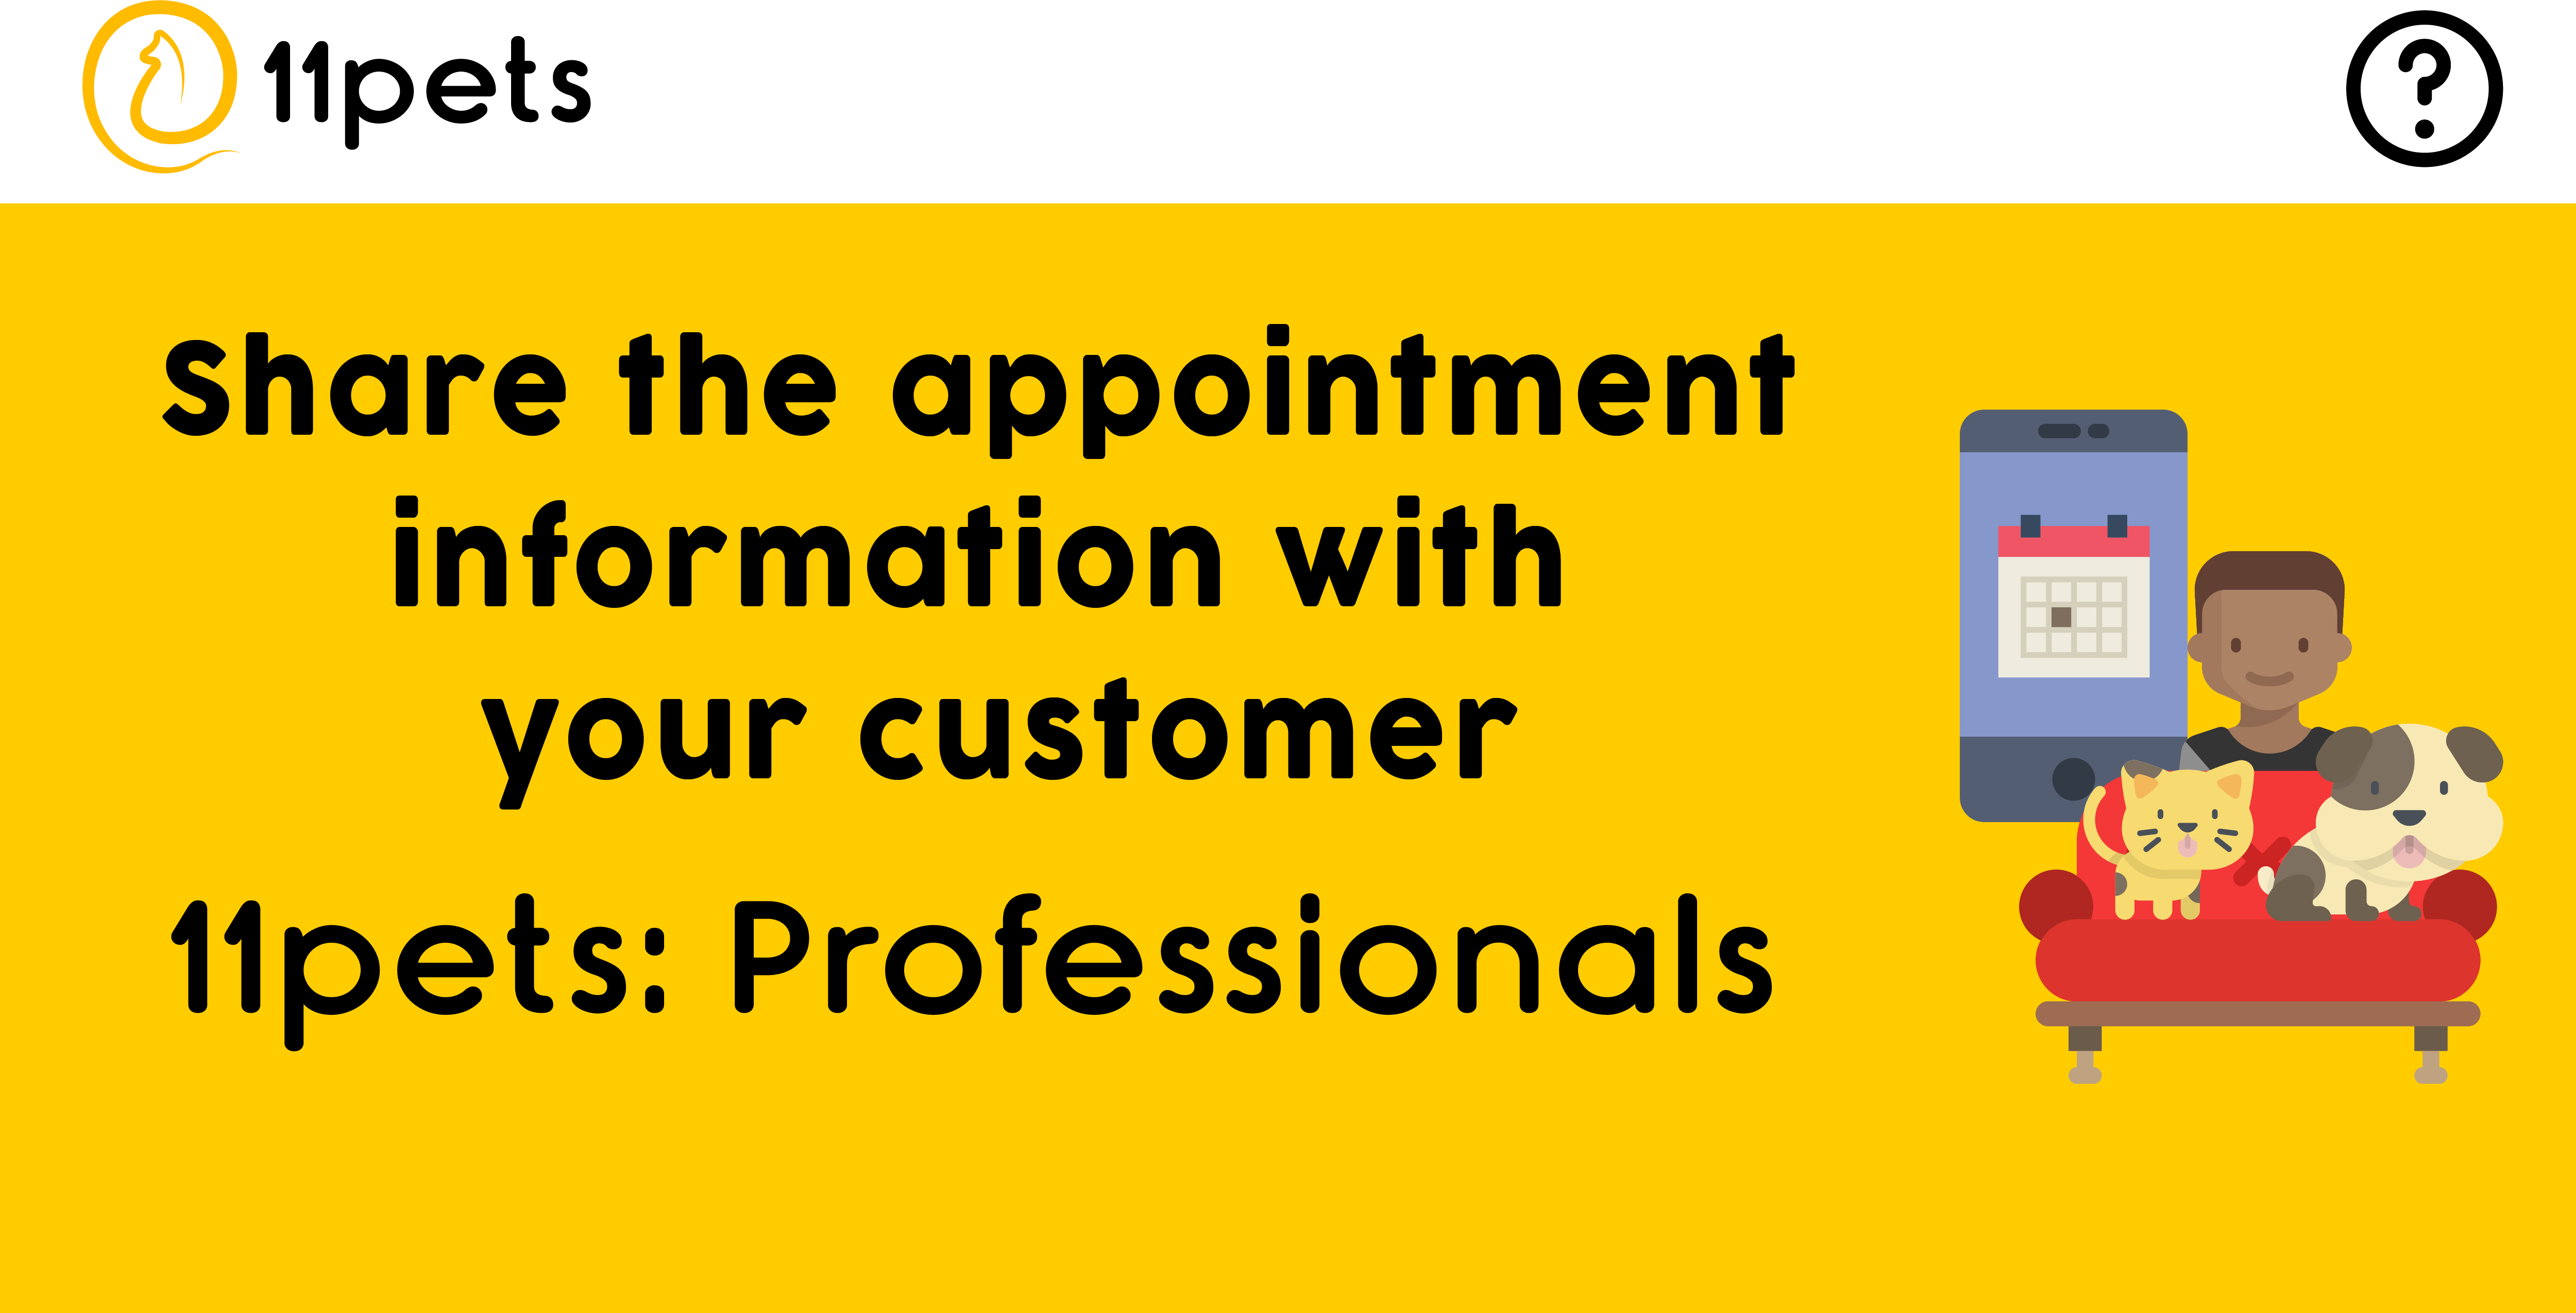 Share the appointment information with your customer